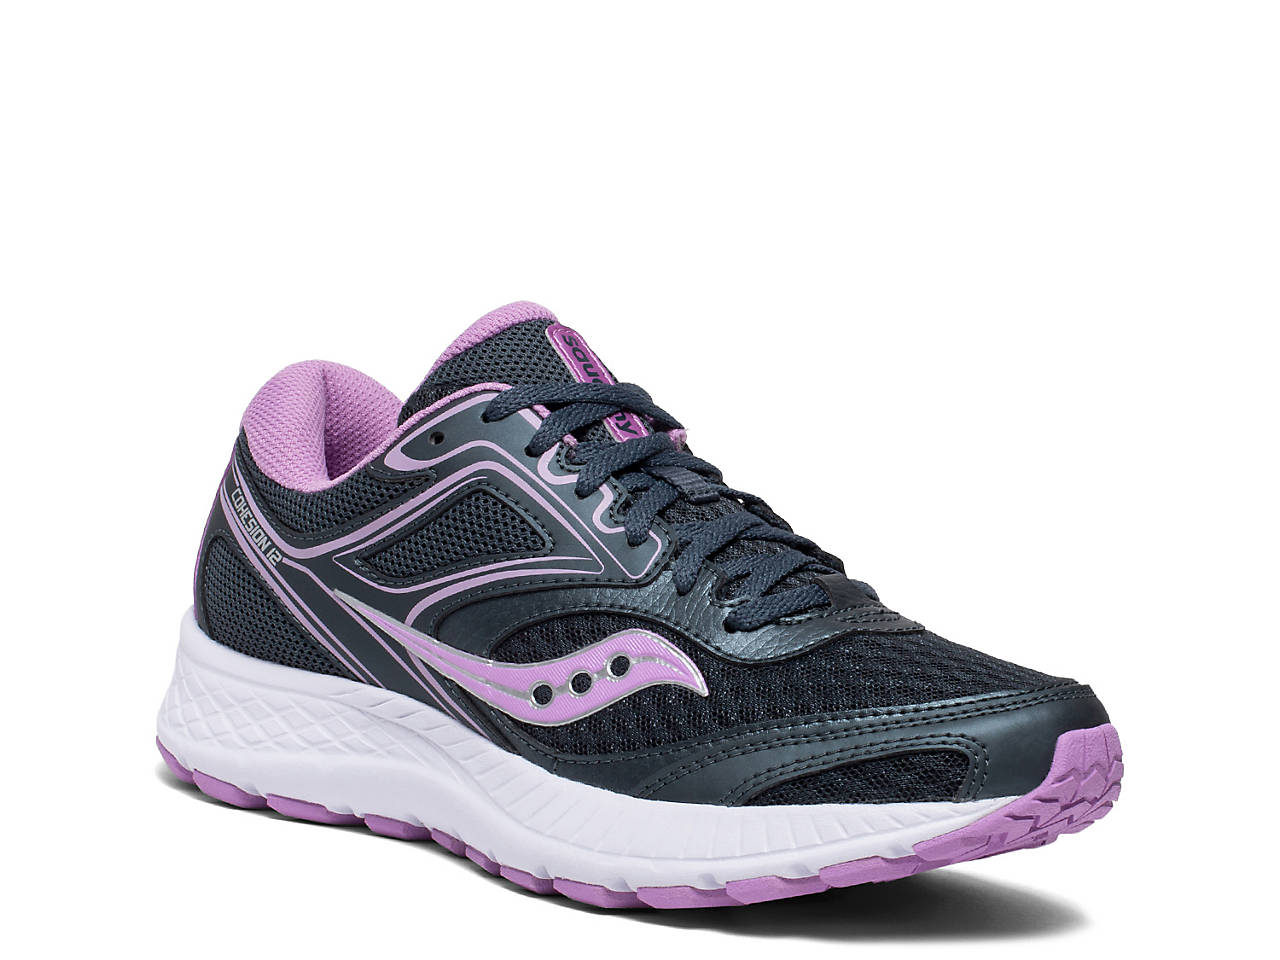 a2652c0078f Saucony Cohesion 12 Running Shoe - Women s Women s Shoes